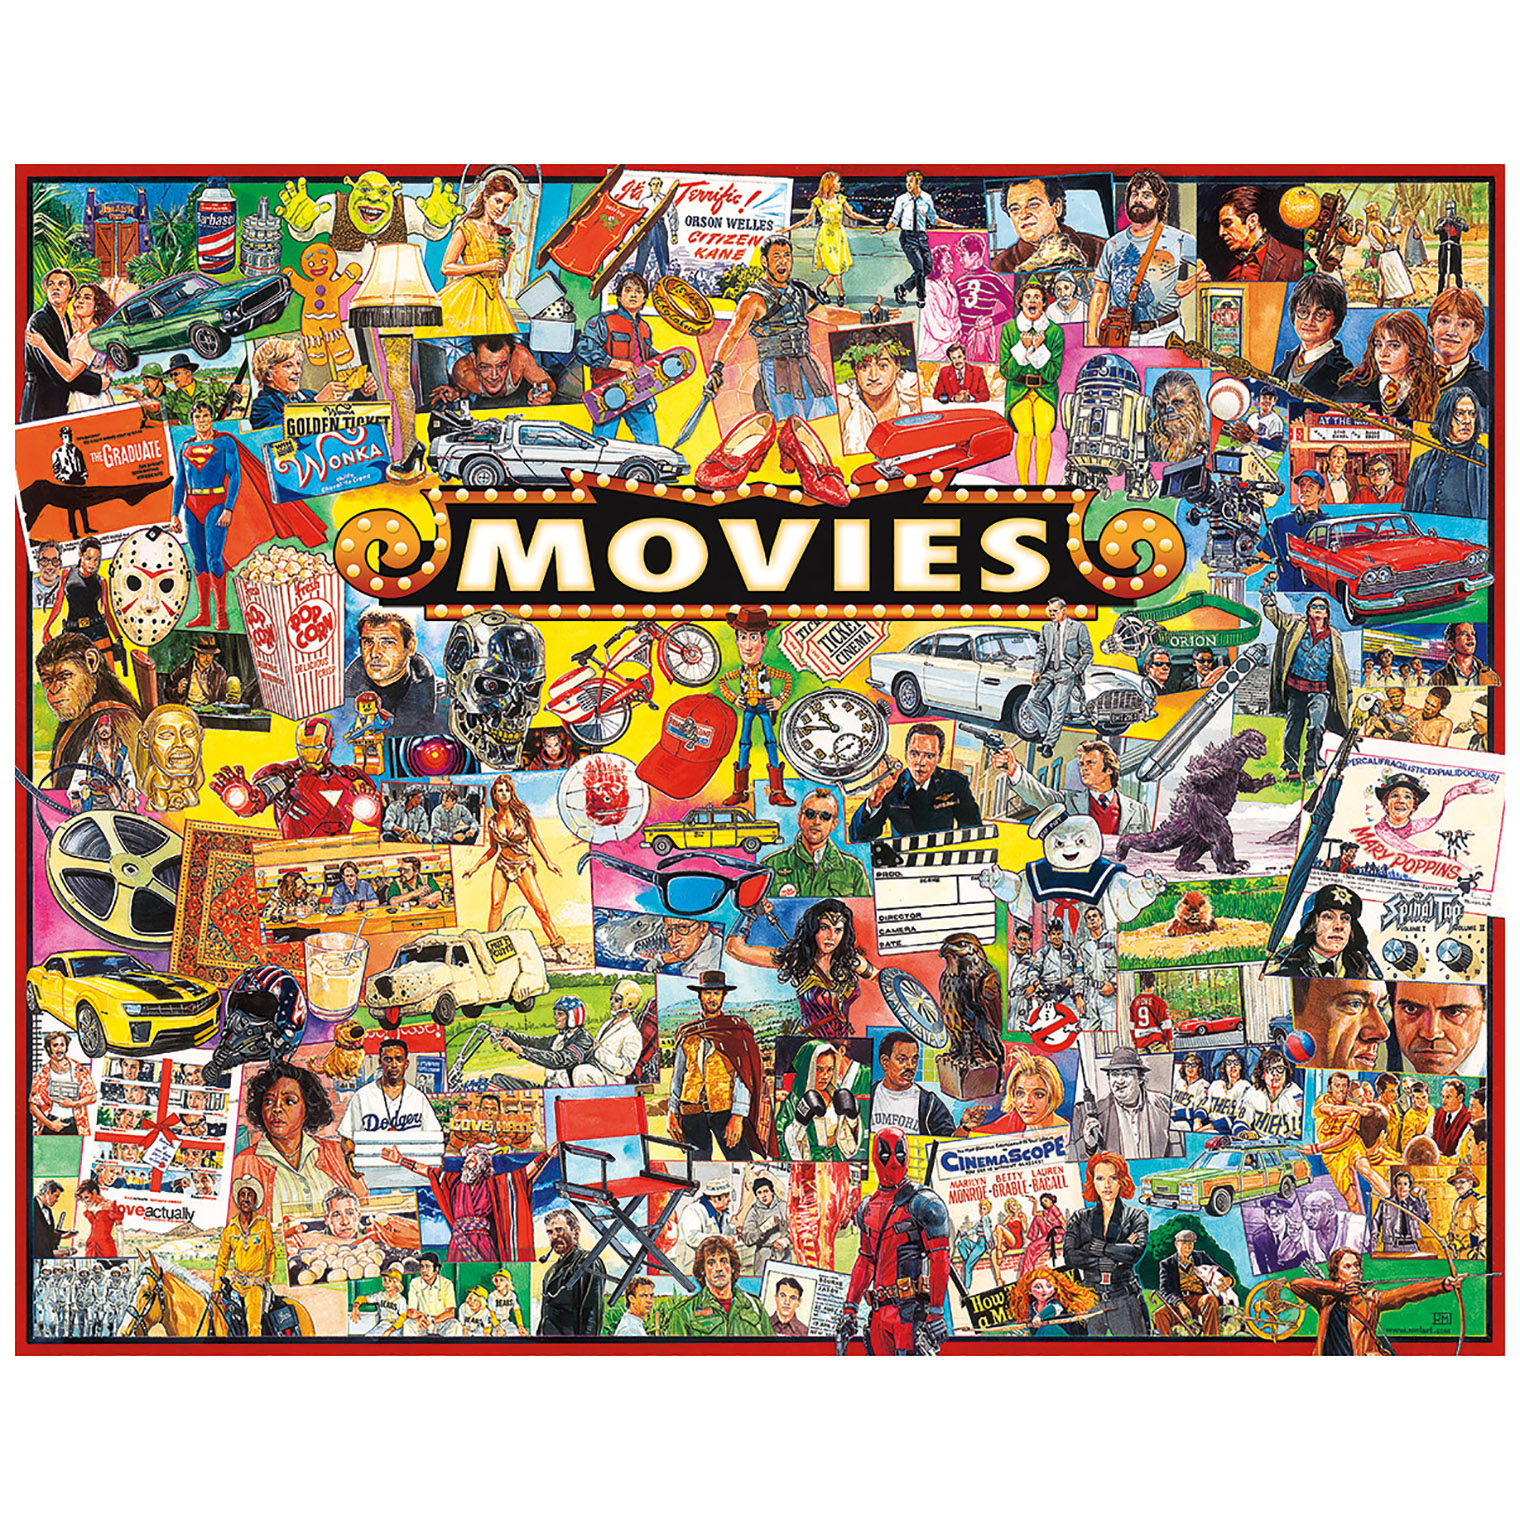 White Mountain Puzzles The Movies 1000 Piece Jigsaw Puzzles by White Mountain Puzzles